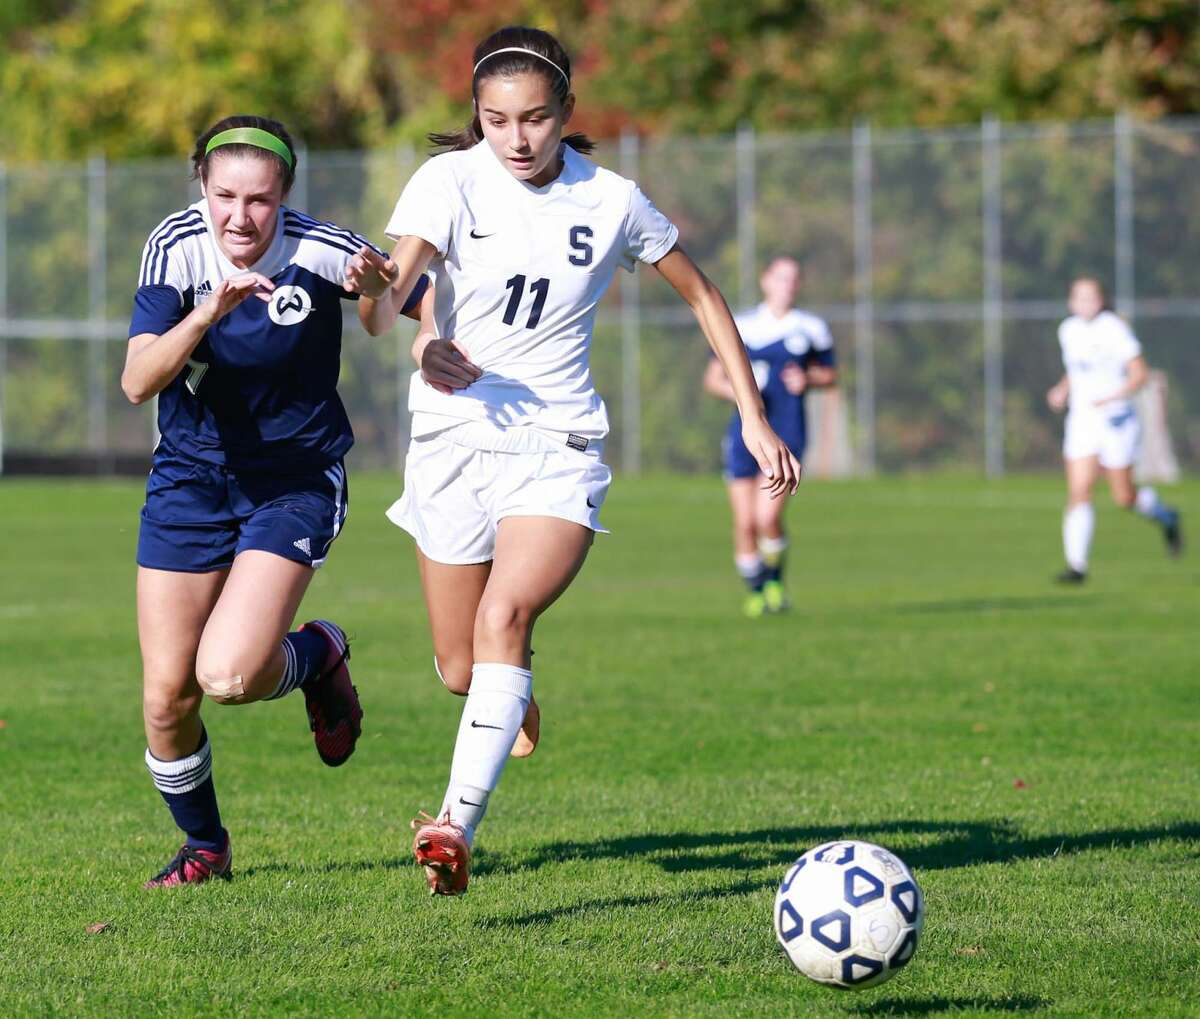 Hour photo/Chris Palermo Wilton's Hayley English and Staples' Tia Zajec race for the ball during the Wrecker's win over Wilton Saturday afternoon.